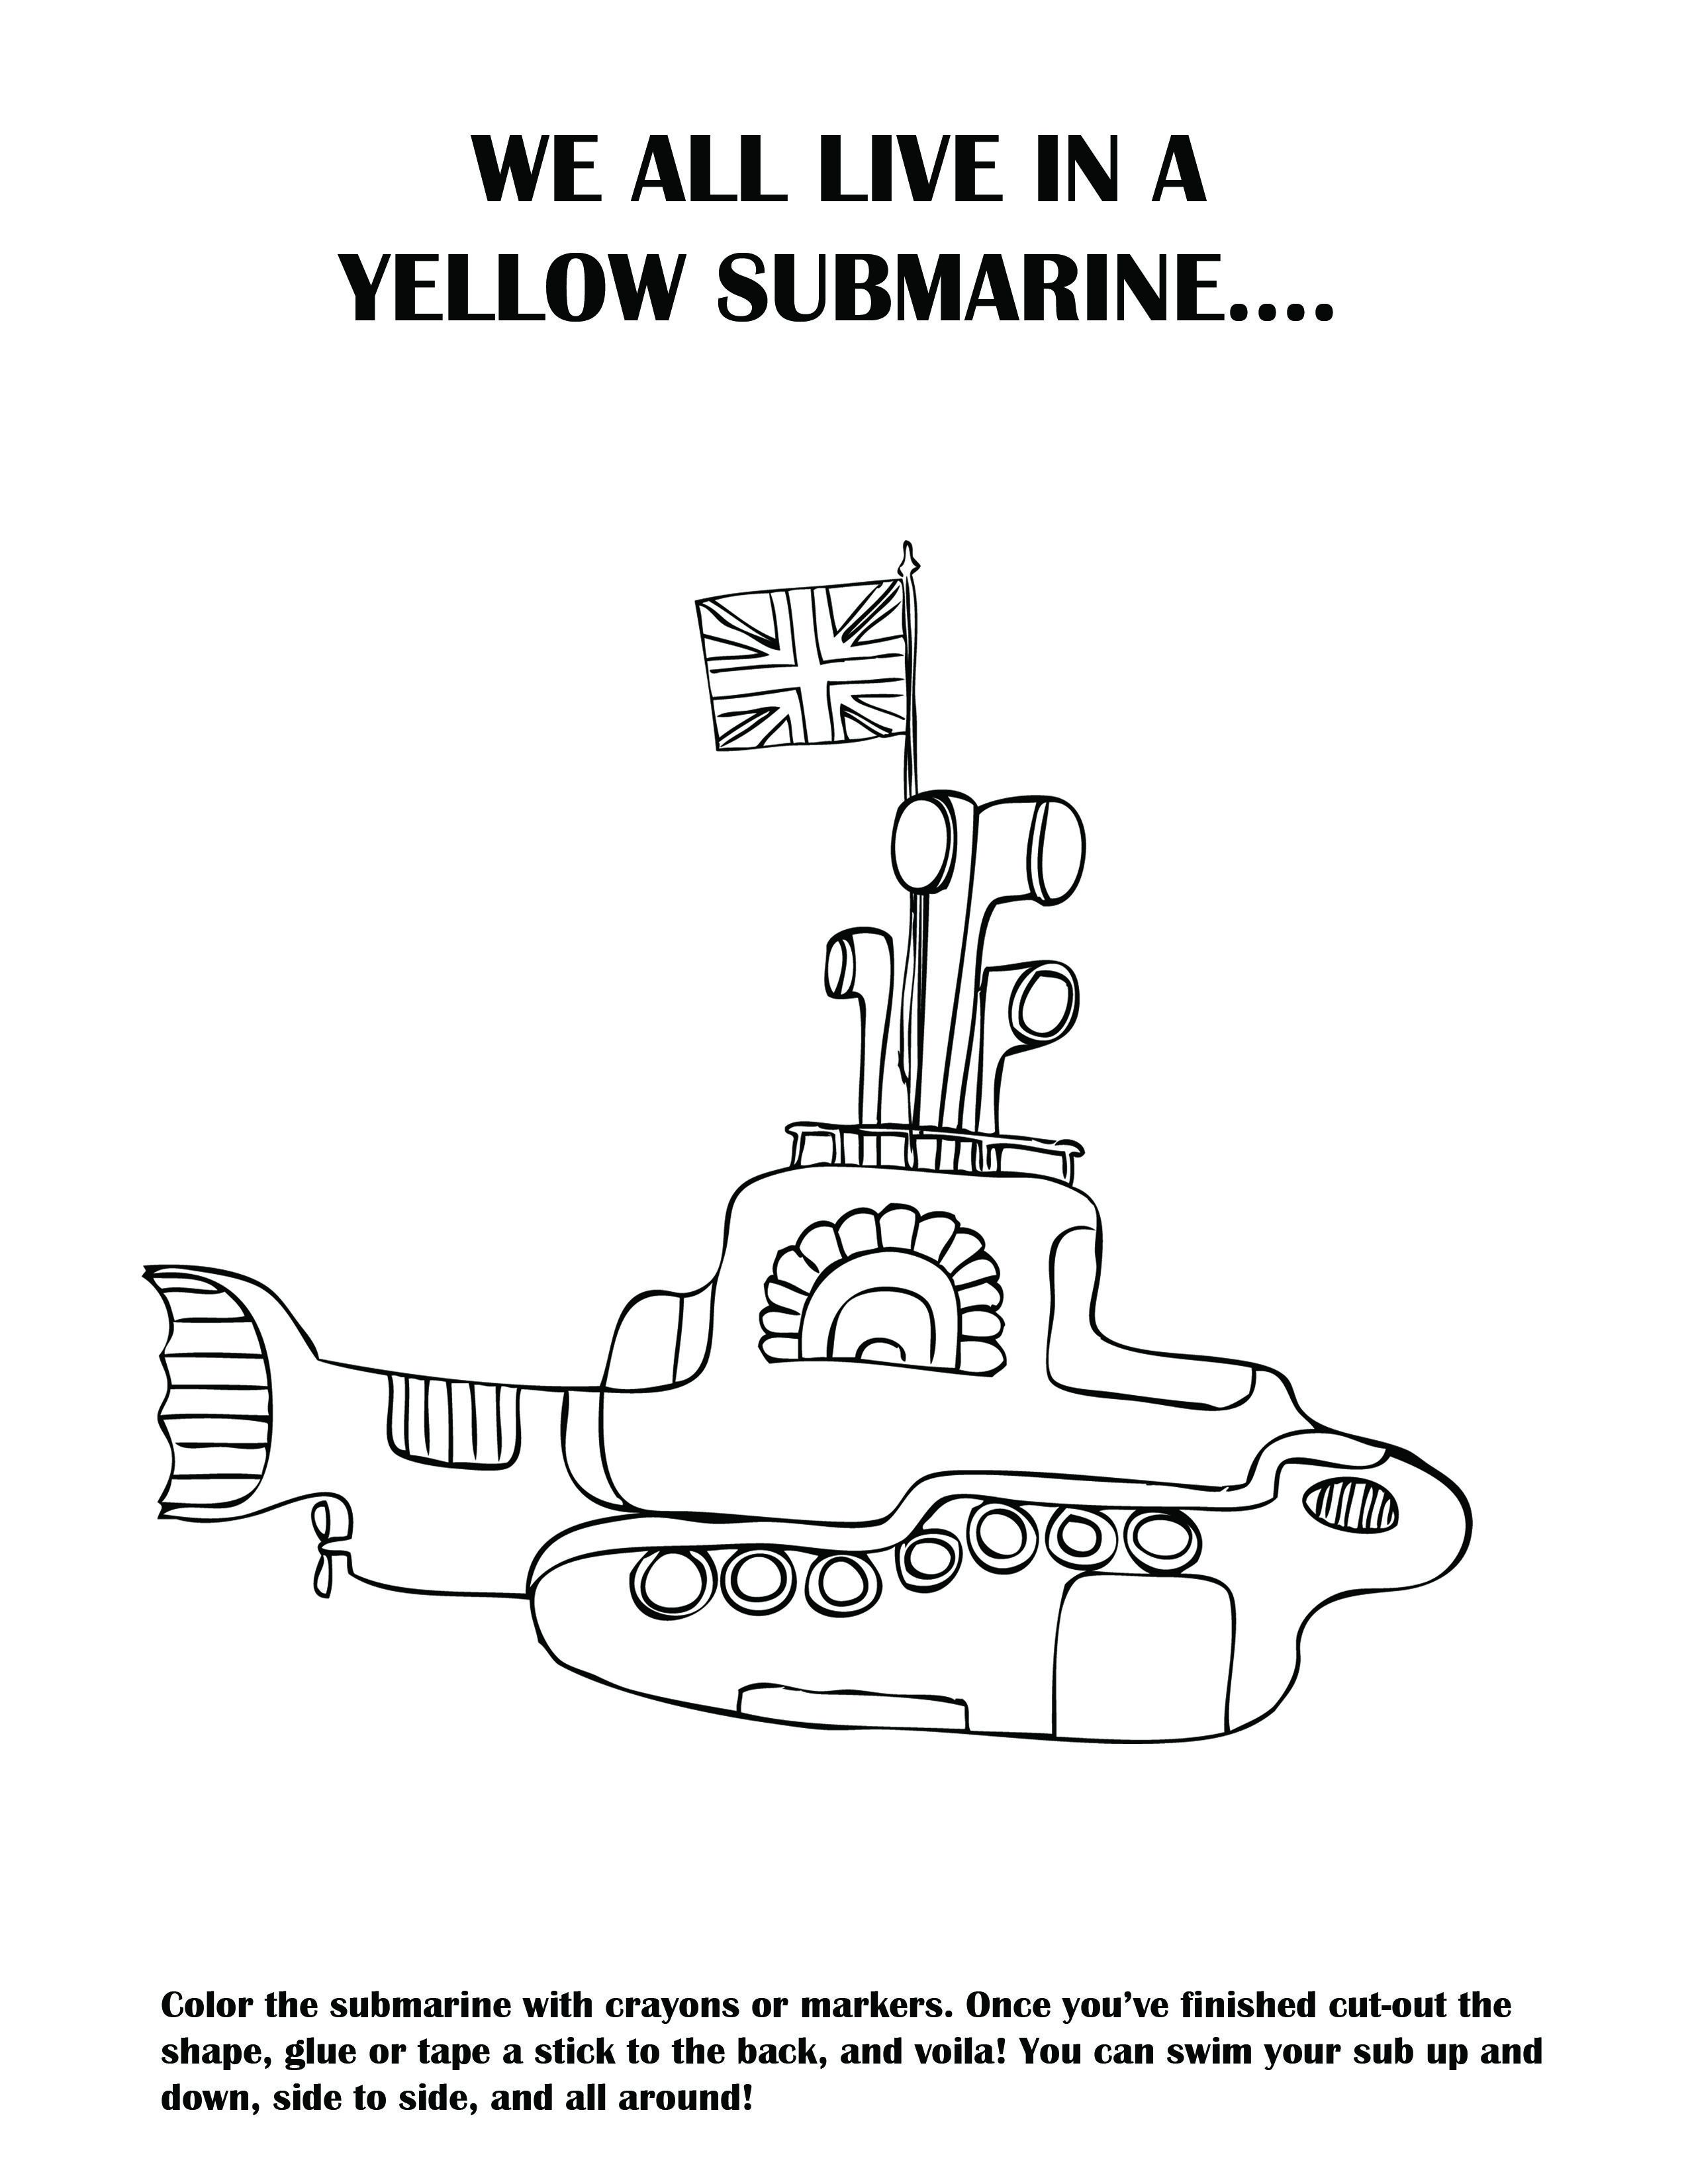 Pin By Bppc On Nani S Favorites Yellow Submarine Coloring Books Beatles Birthday Party